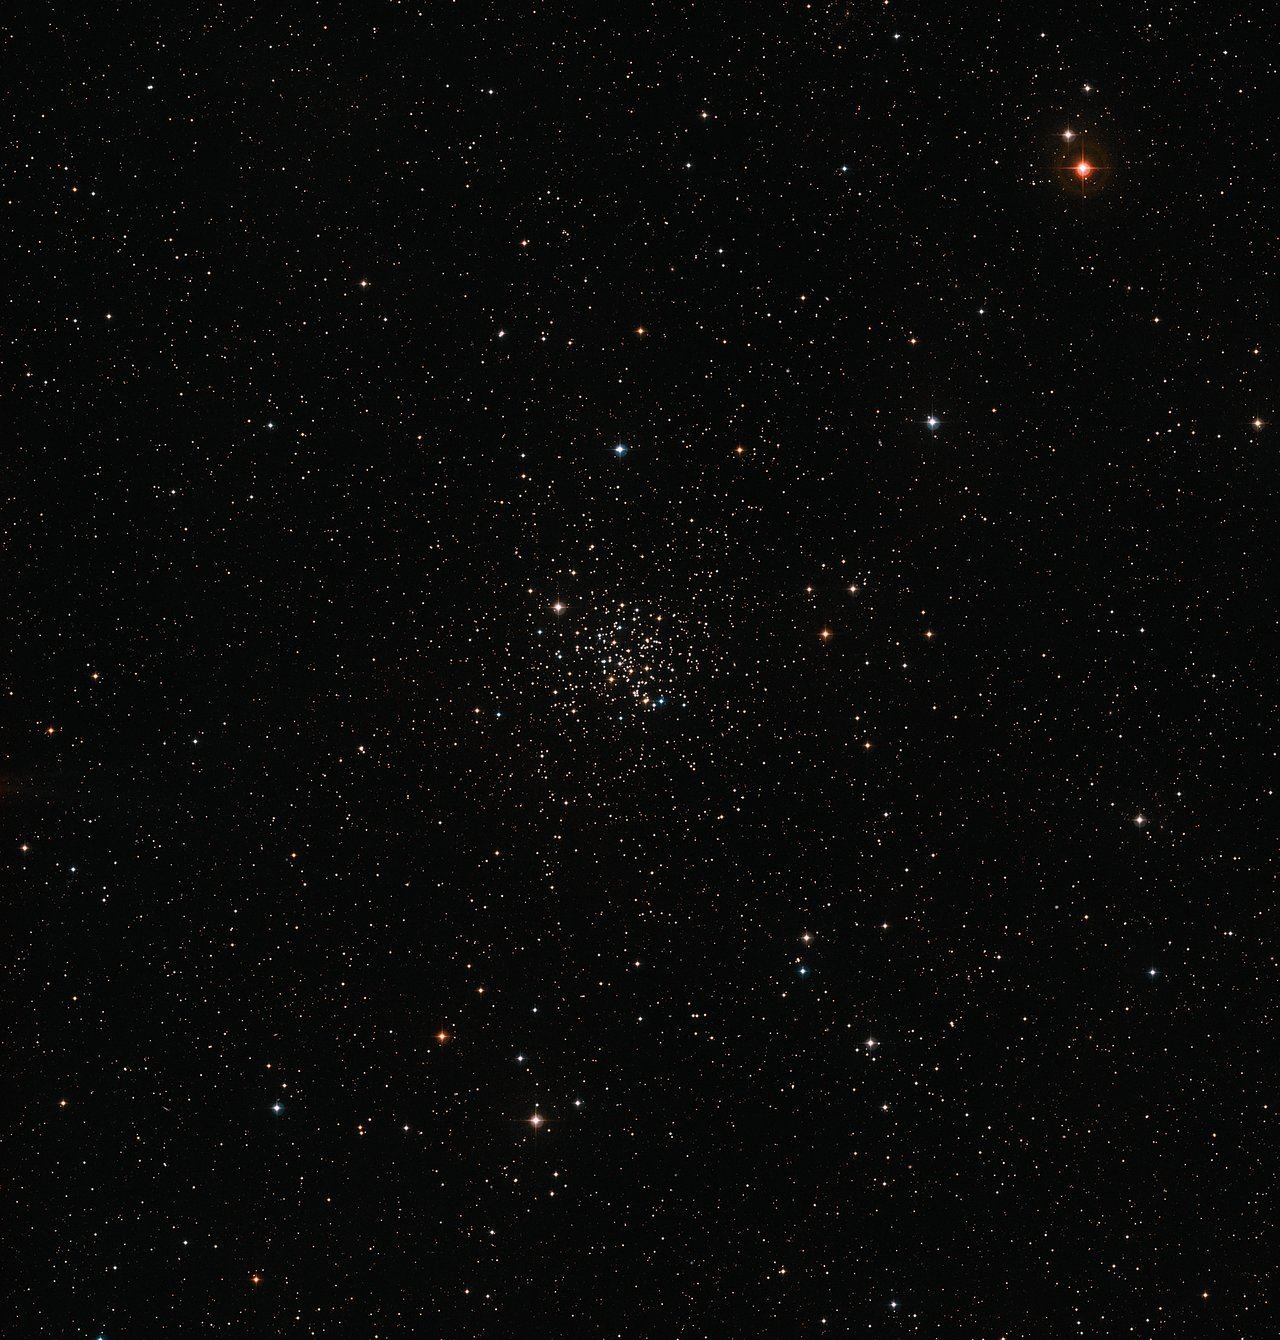 This wide-field image of the sky around the old open star cluster Messier 67 was created from images forming part of the Digitized Sky Survey 2. The cluster appears as a rich grouping of stars at the centre of the picture. Messier 67 contains stars that are all about the same age, and have the same chemical composition, as the Sun. – Image Credit: ESO/Digitized Sky Survey 2 - Acknowledgement: Davide De Martin